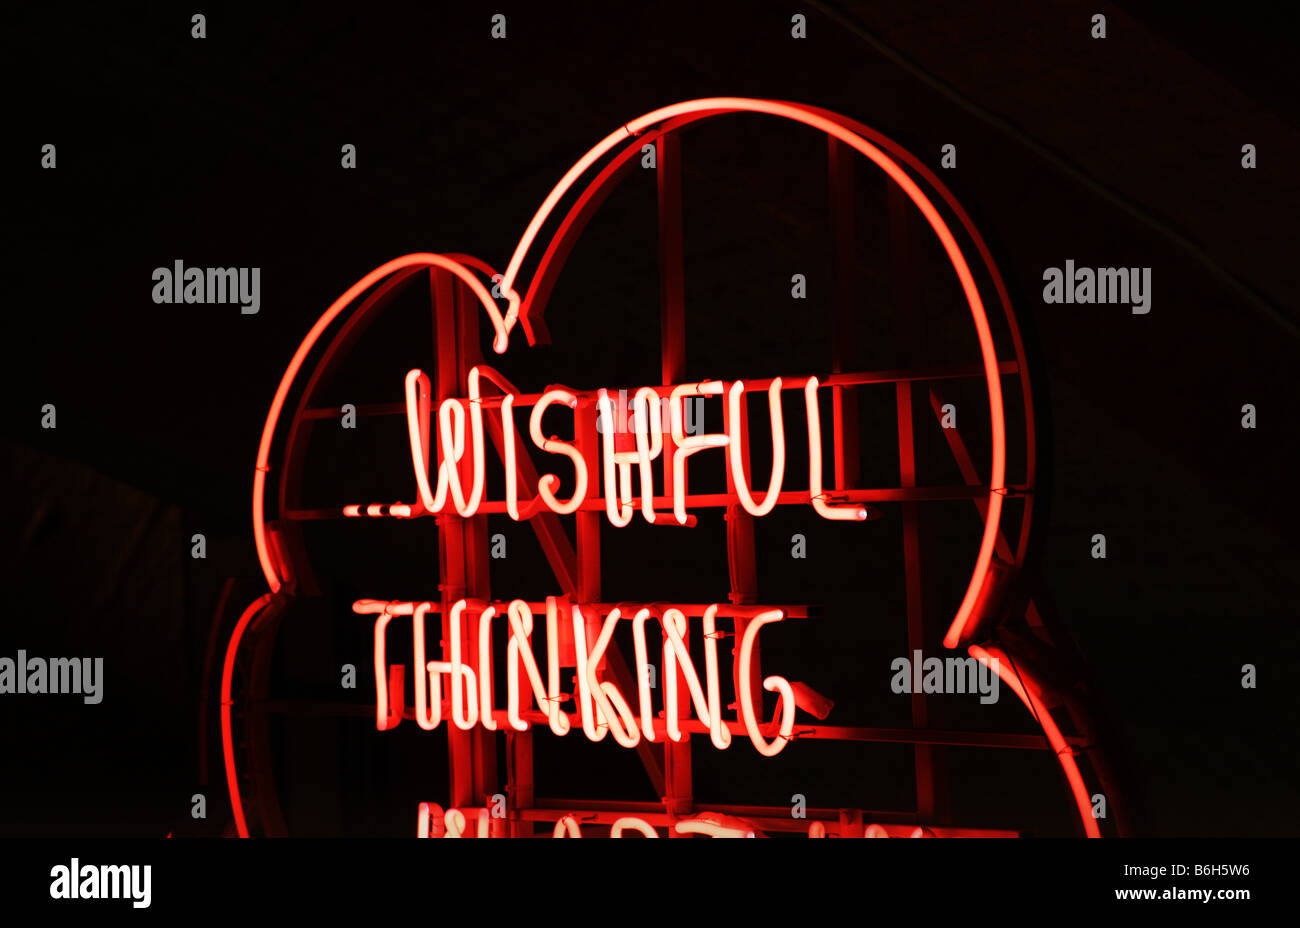 A 'Wishful Thinking' sign in red neon at night. - Stock Image